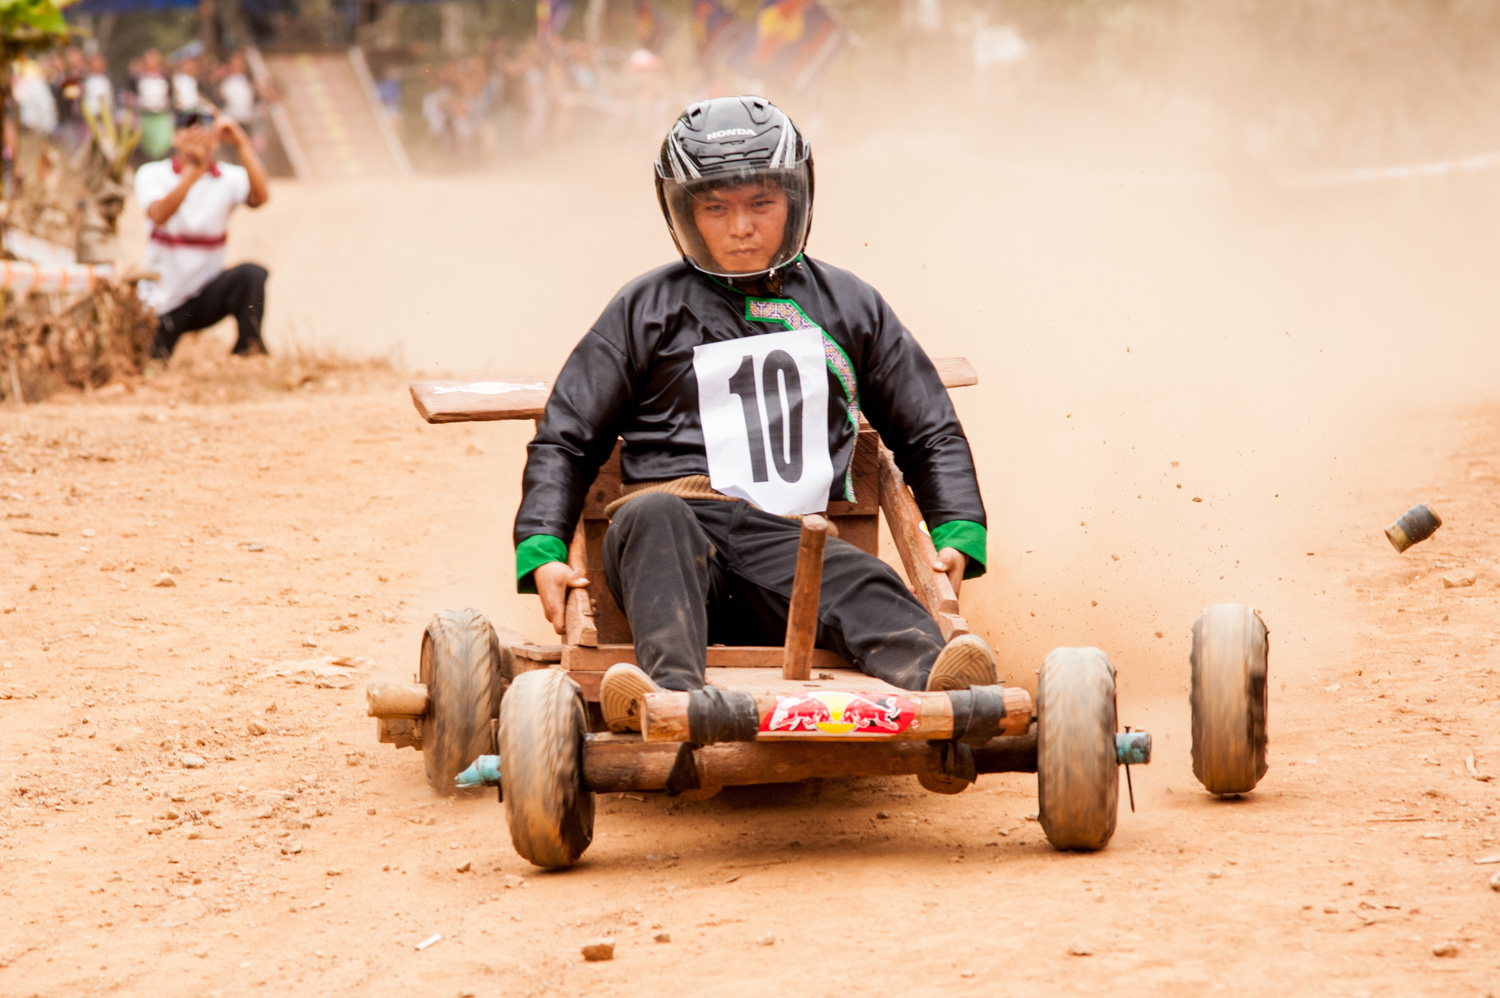 How To Stimulate Your Photography by Learning From the Best Cart Racer © Kevin Landwer-Johan